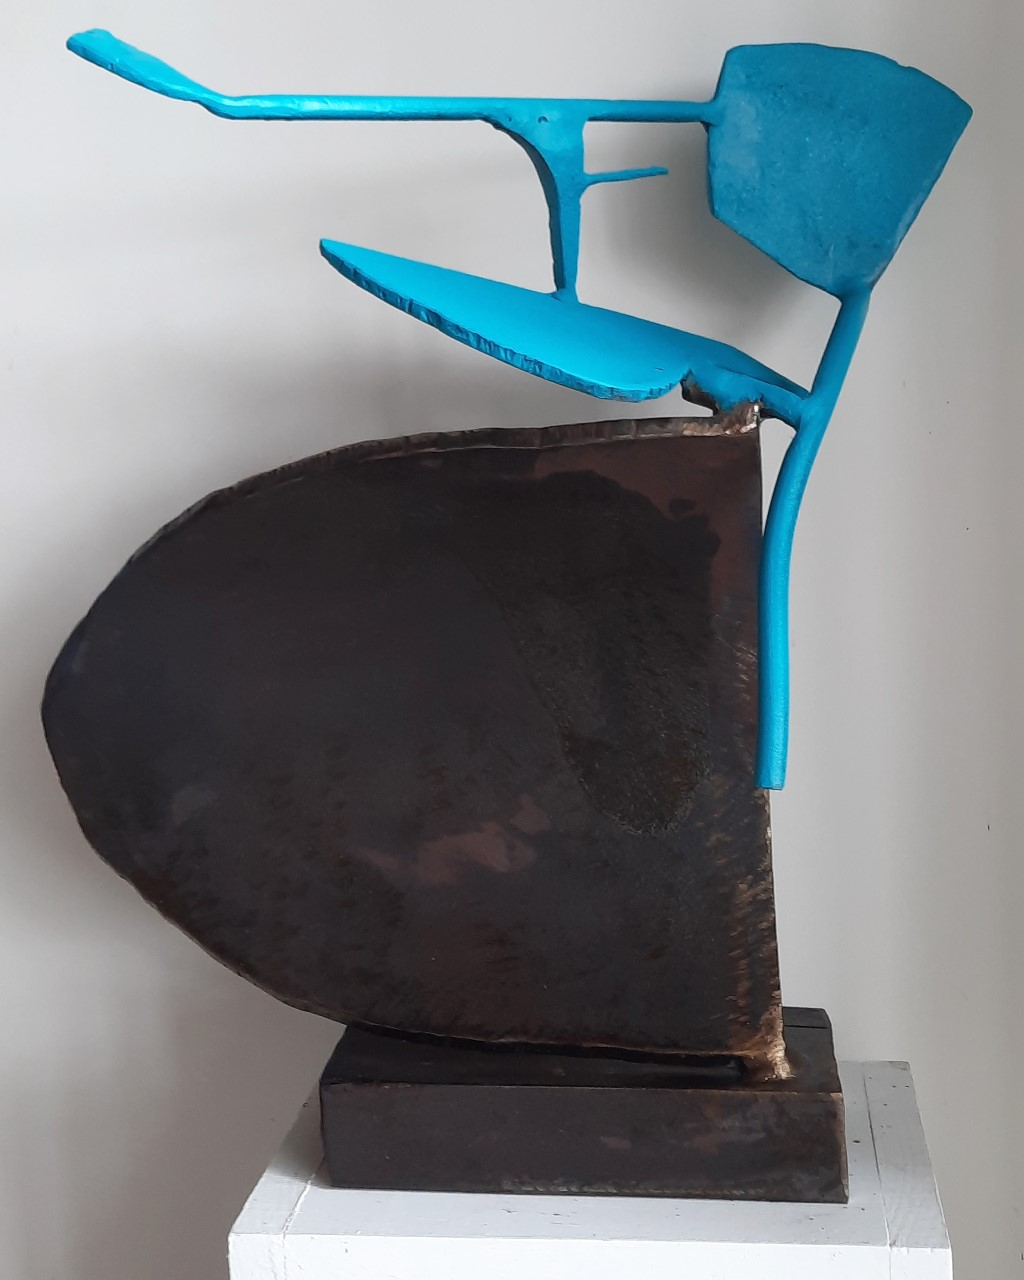 Paul bacon sculpture landscape abstract impressionism steel sketch